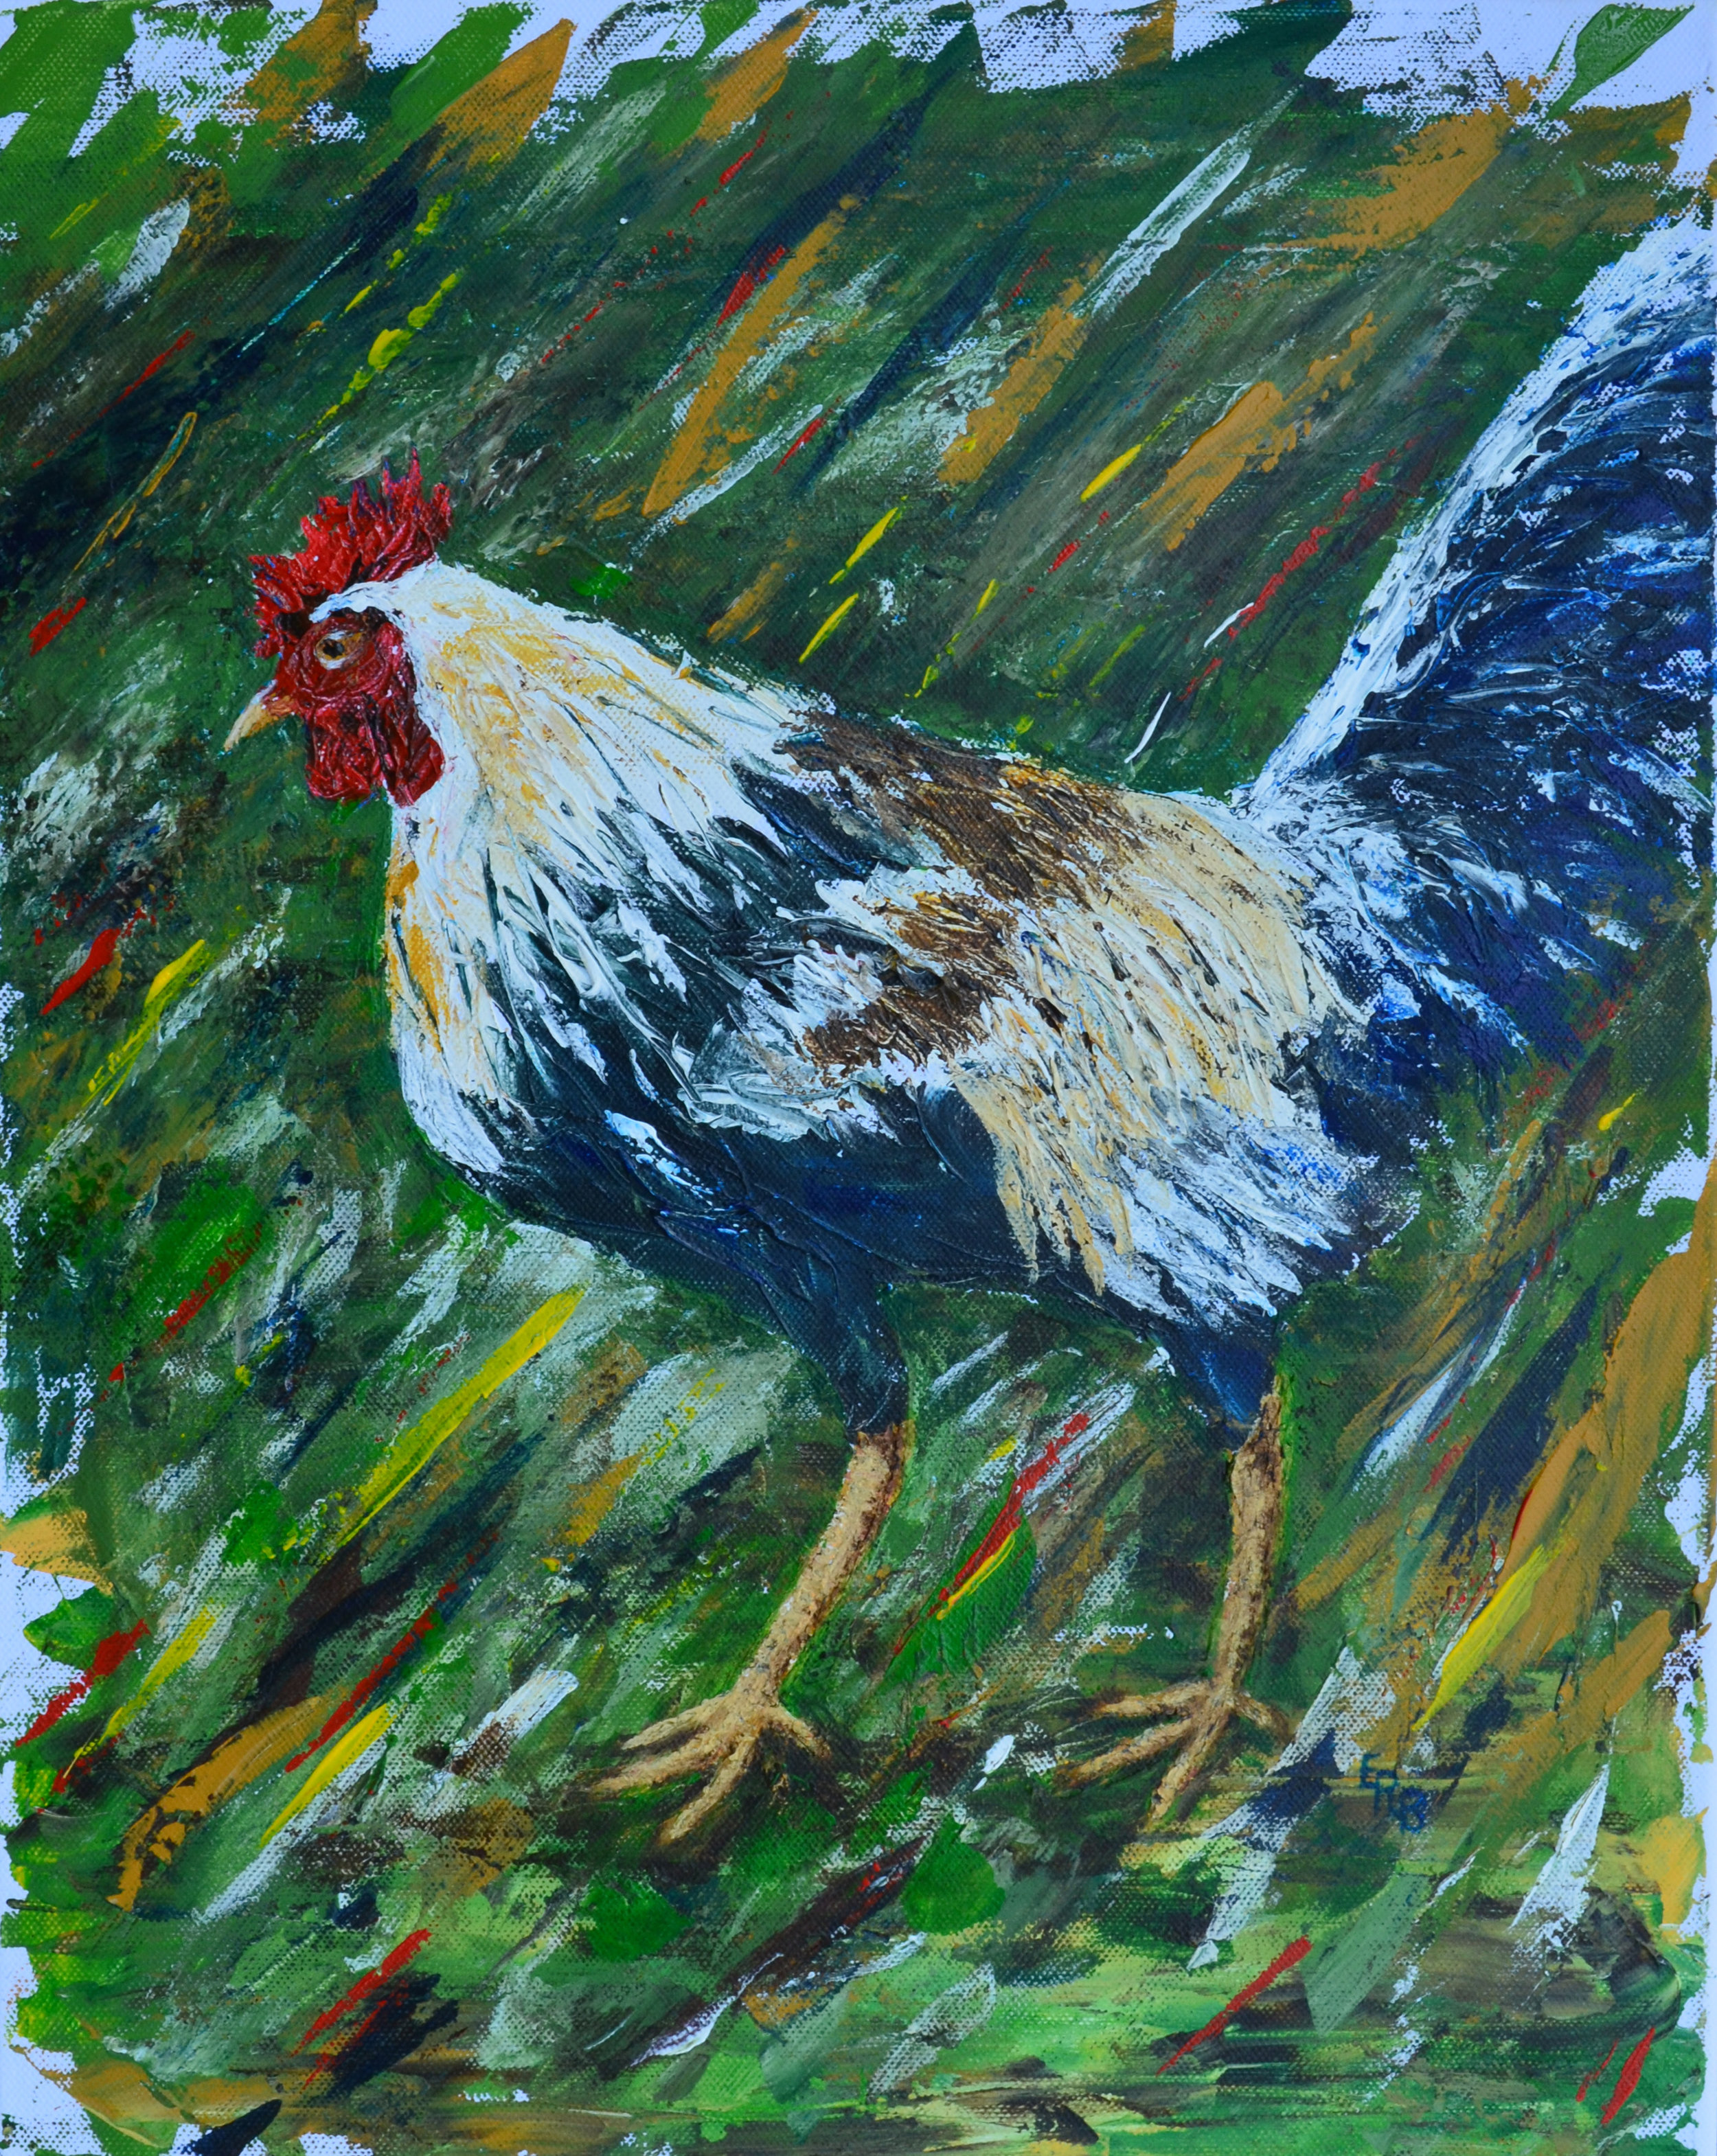 Gallo (Rooster)